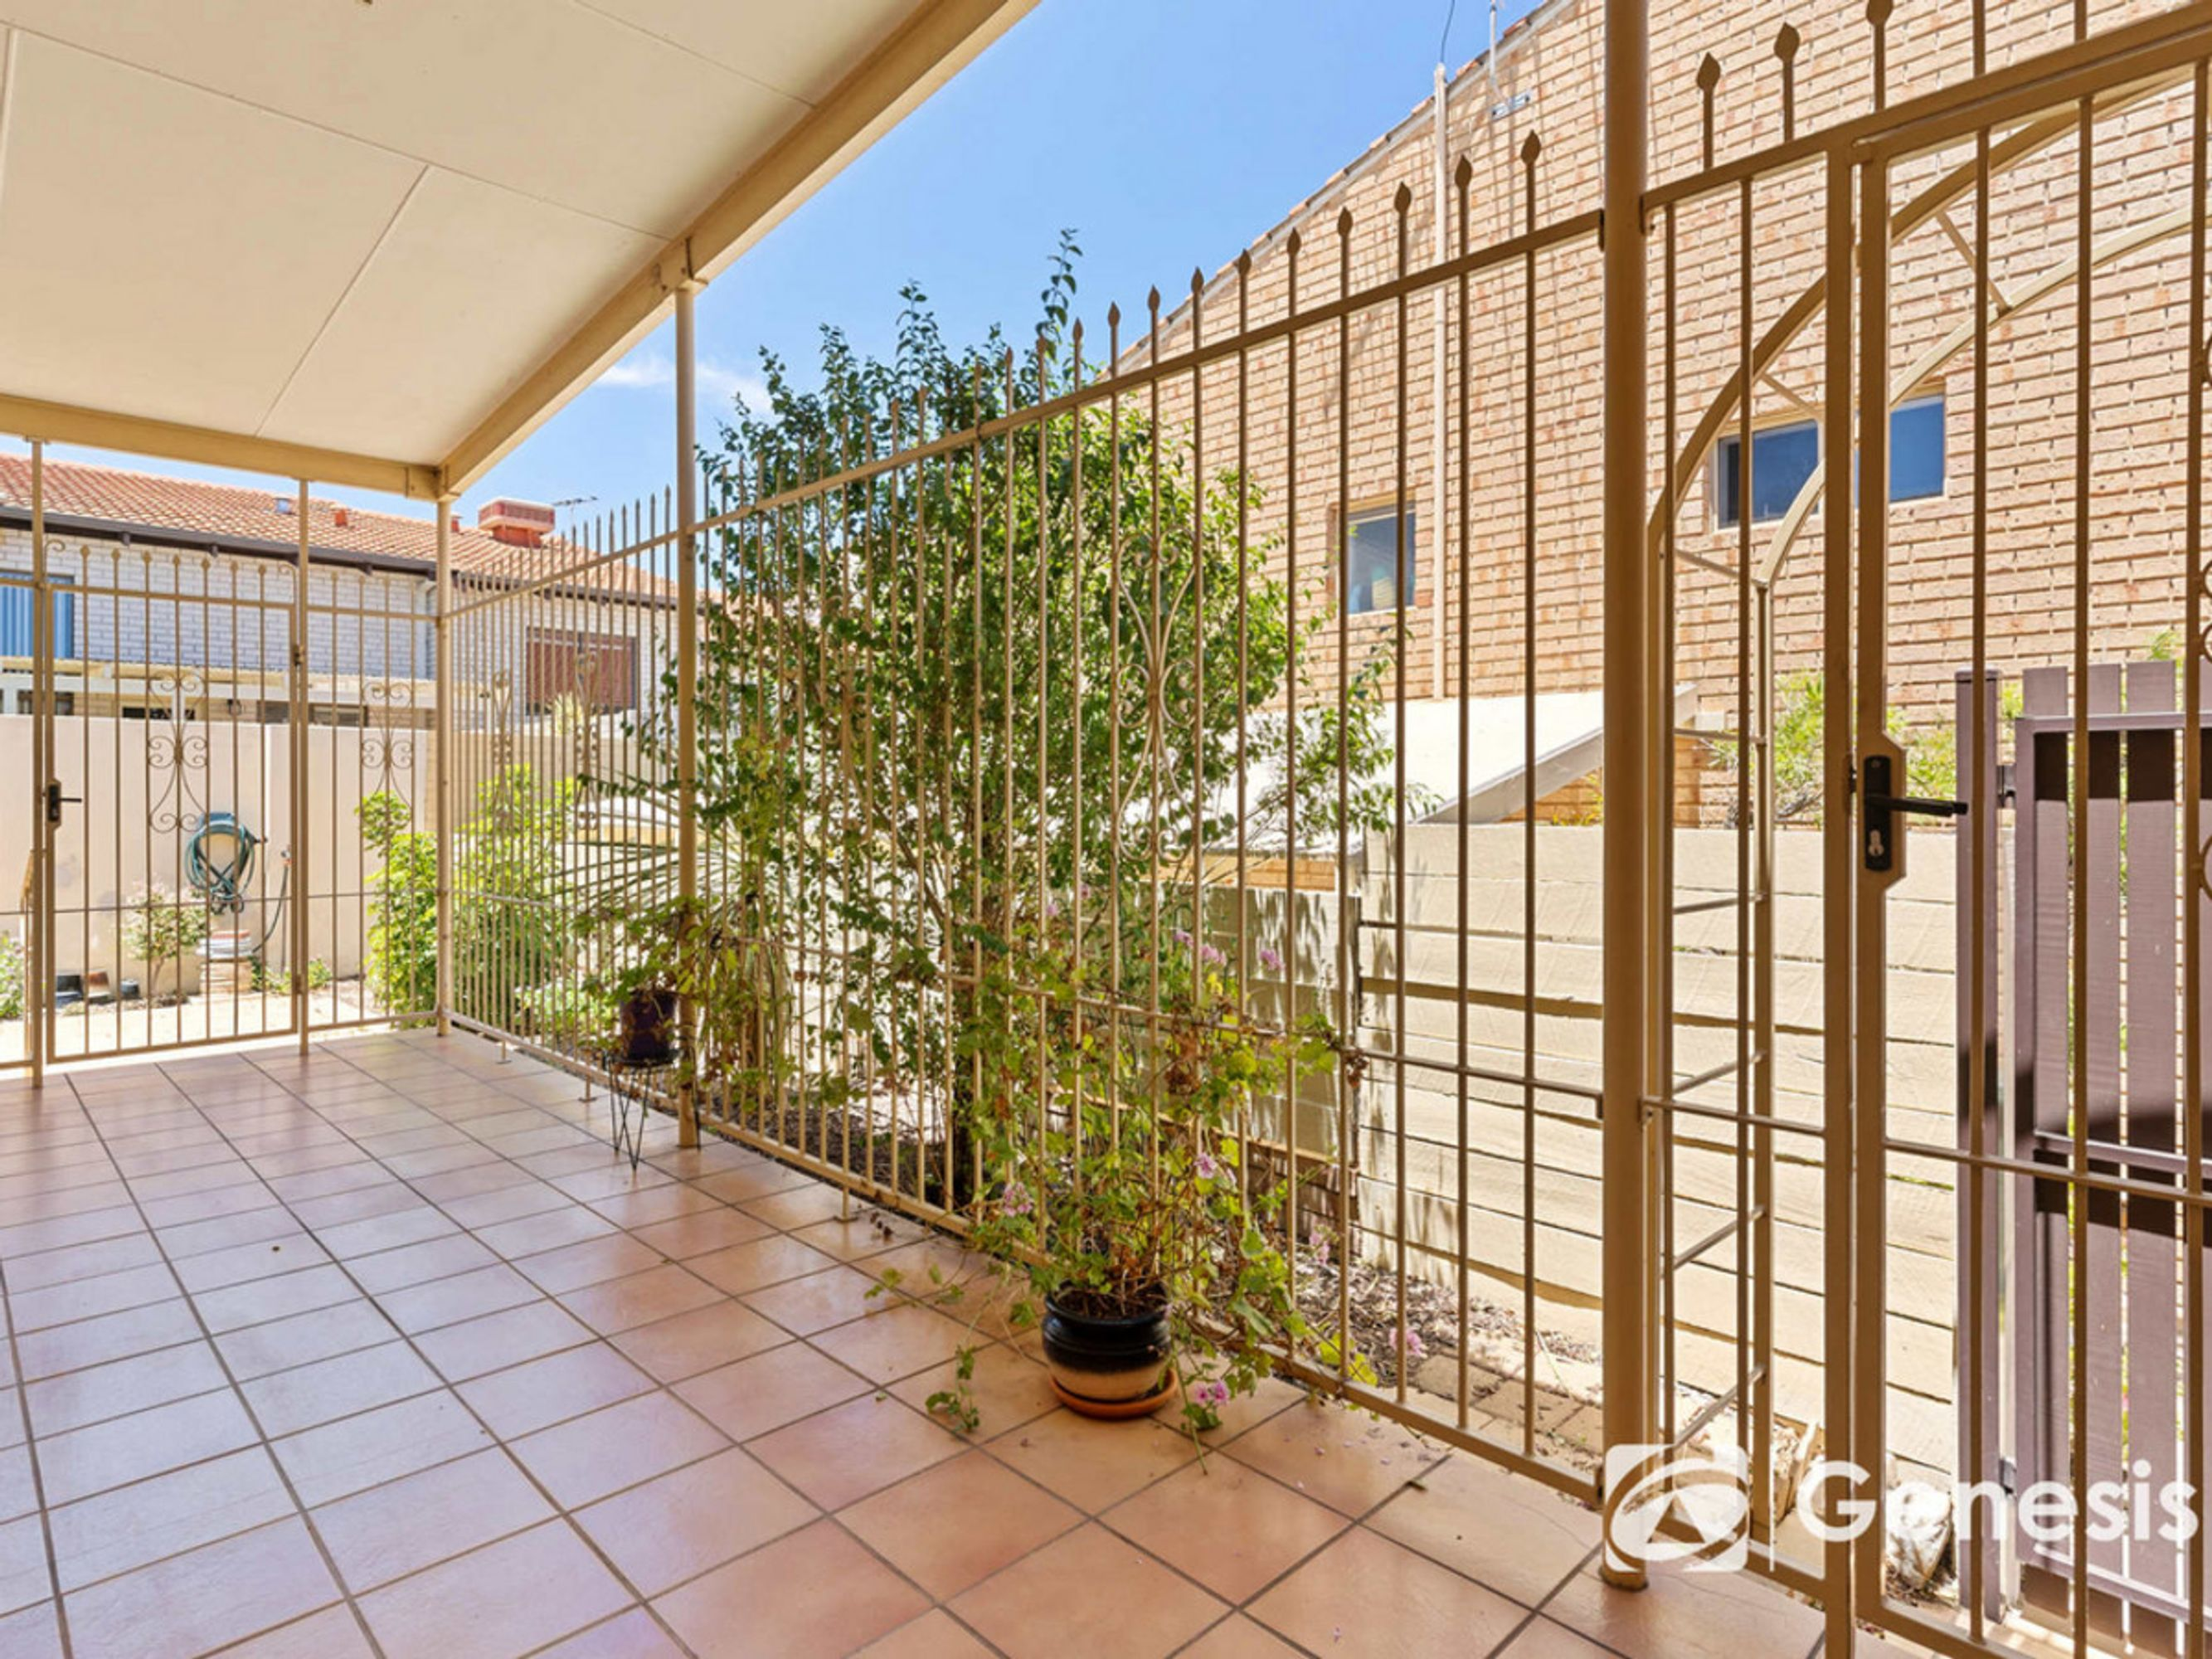 7/22 Little Walcott Street, North Perth, WA 6006